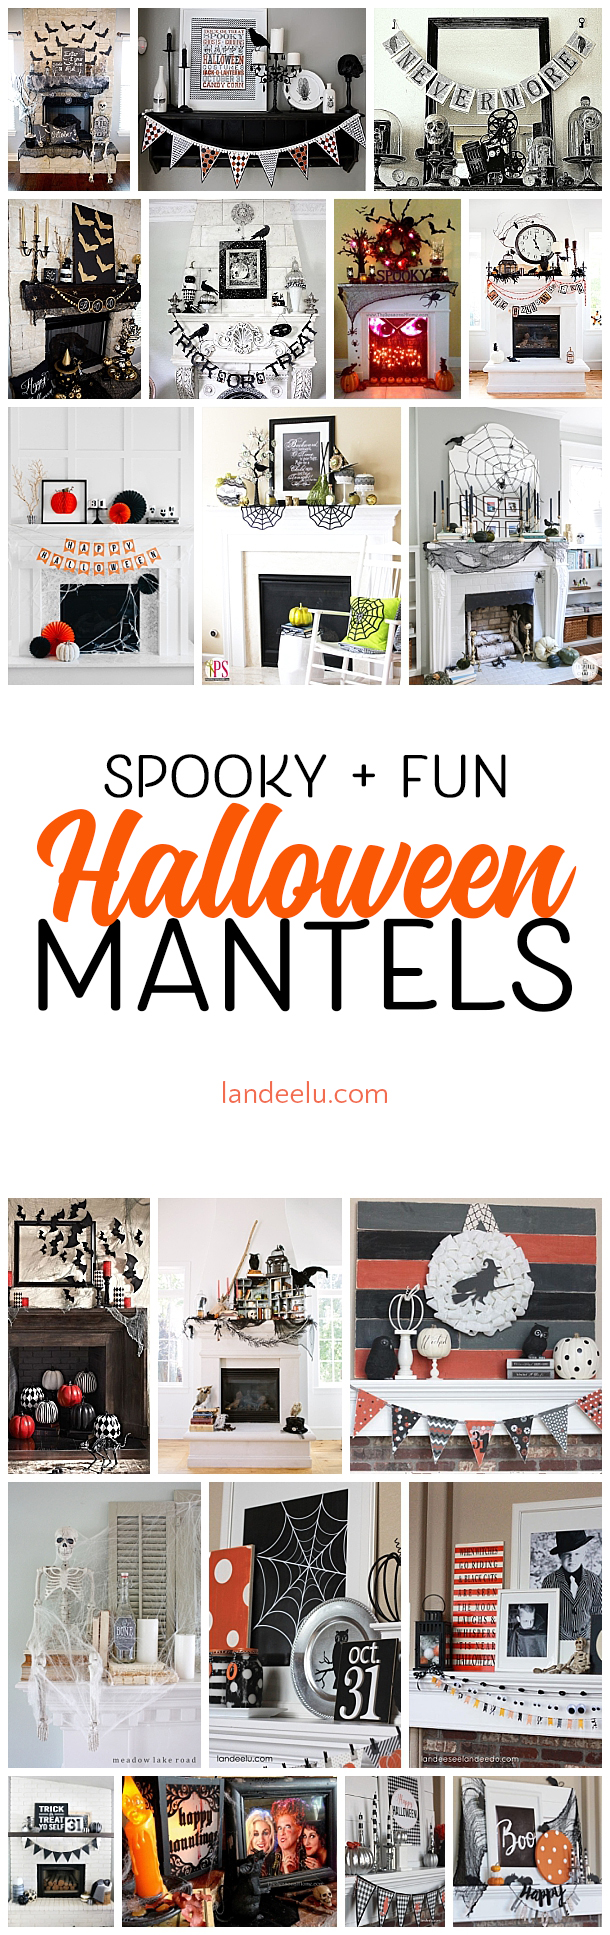 These Halloween decoration ideas for mantels are awesome!!